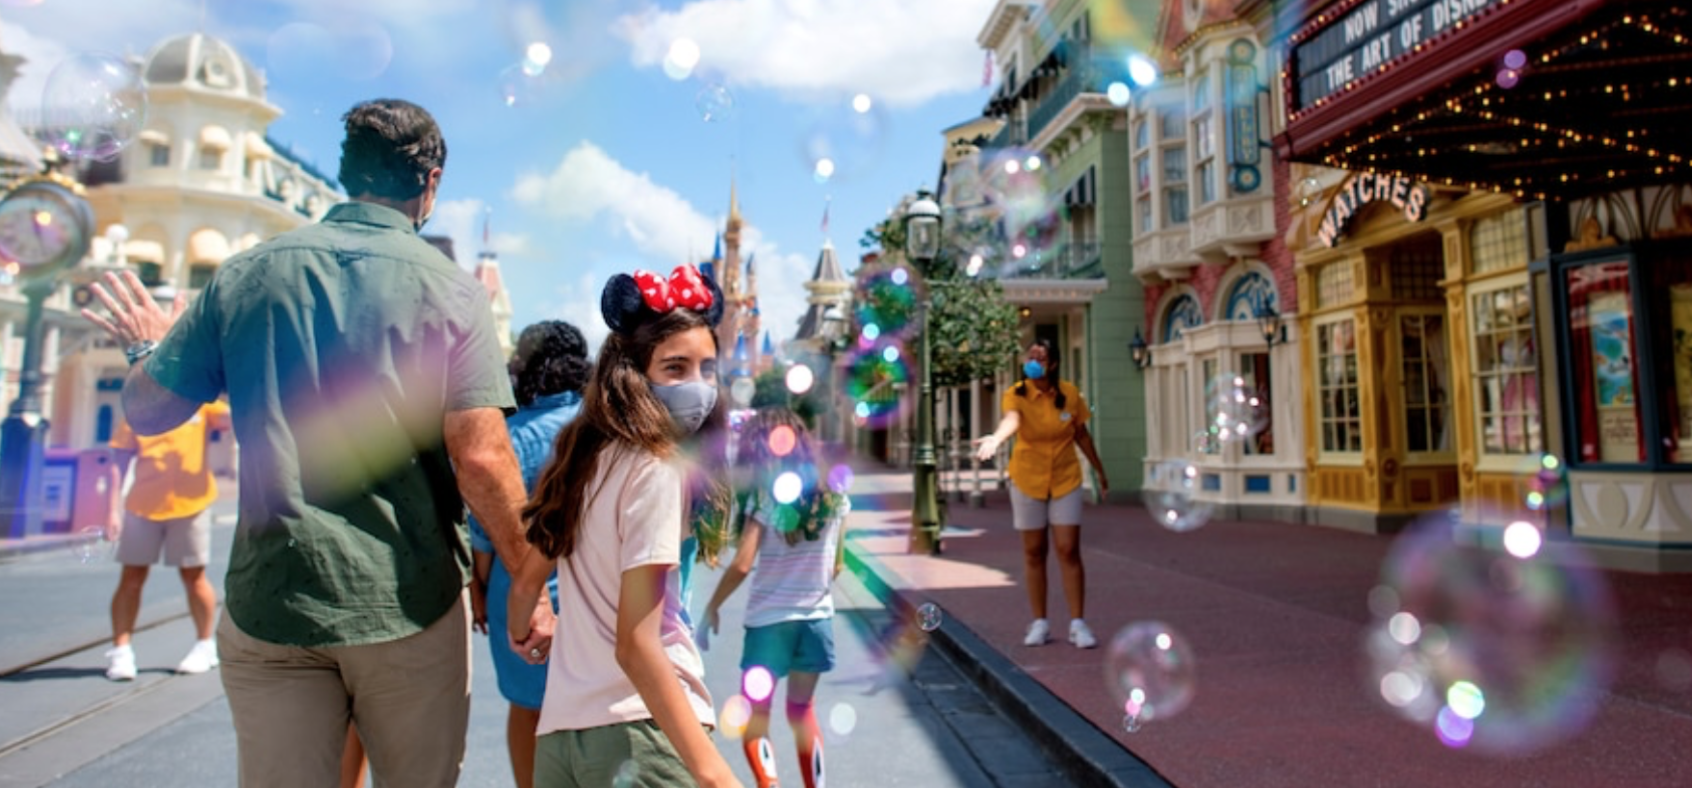 Discover Disney World $50 a Day